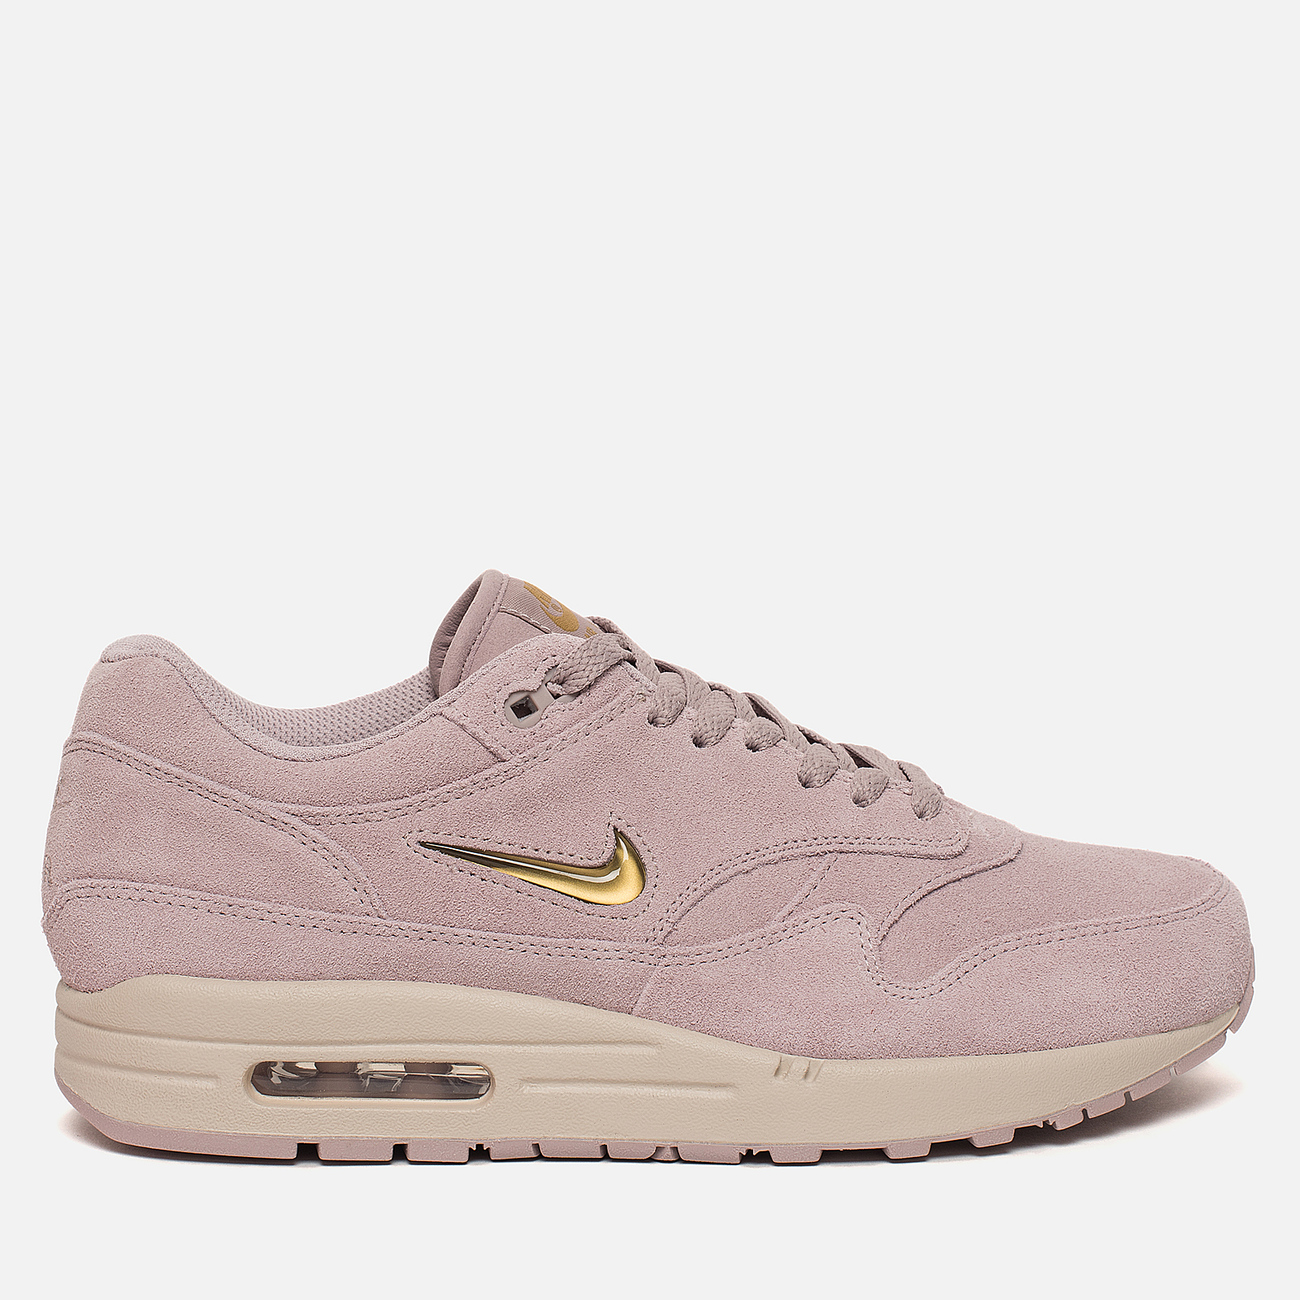 Air Max 1 Premium Sc Particle Rose Metallic Gold